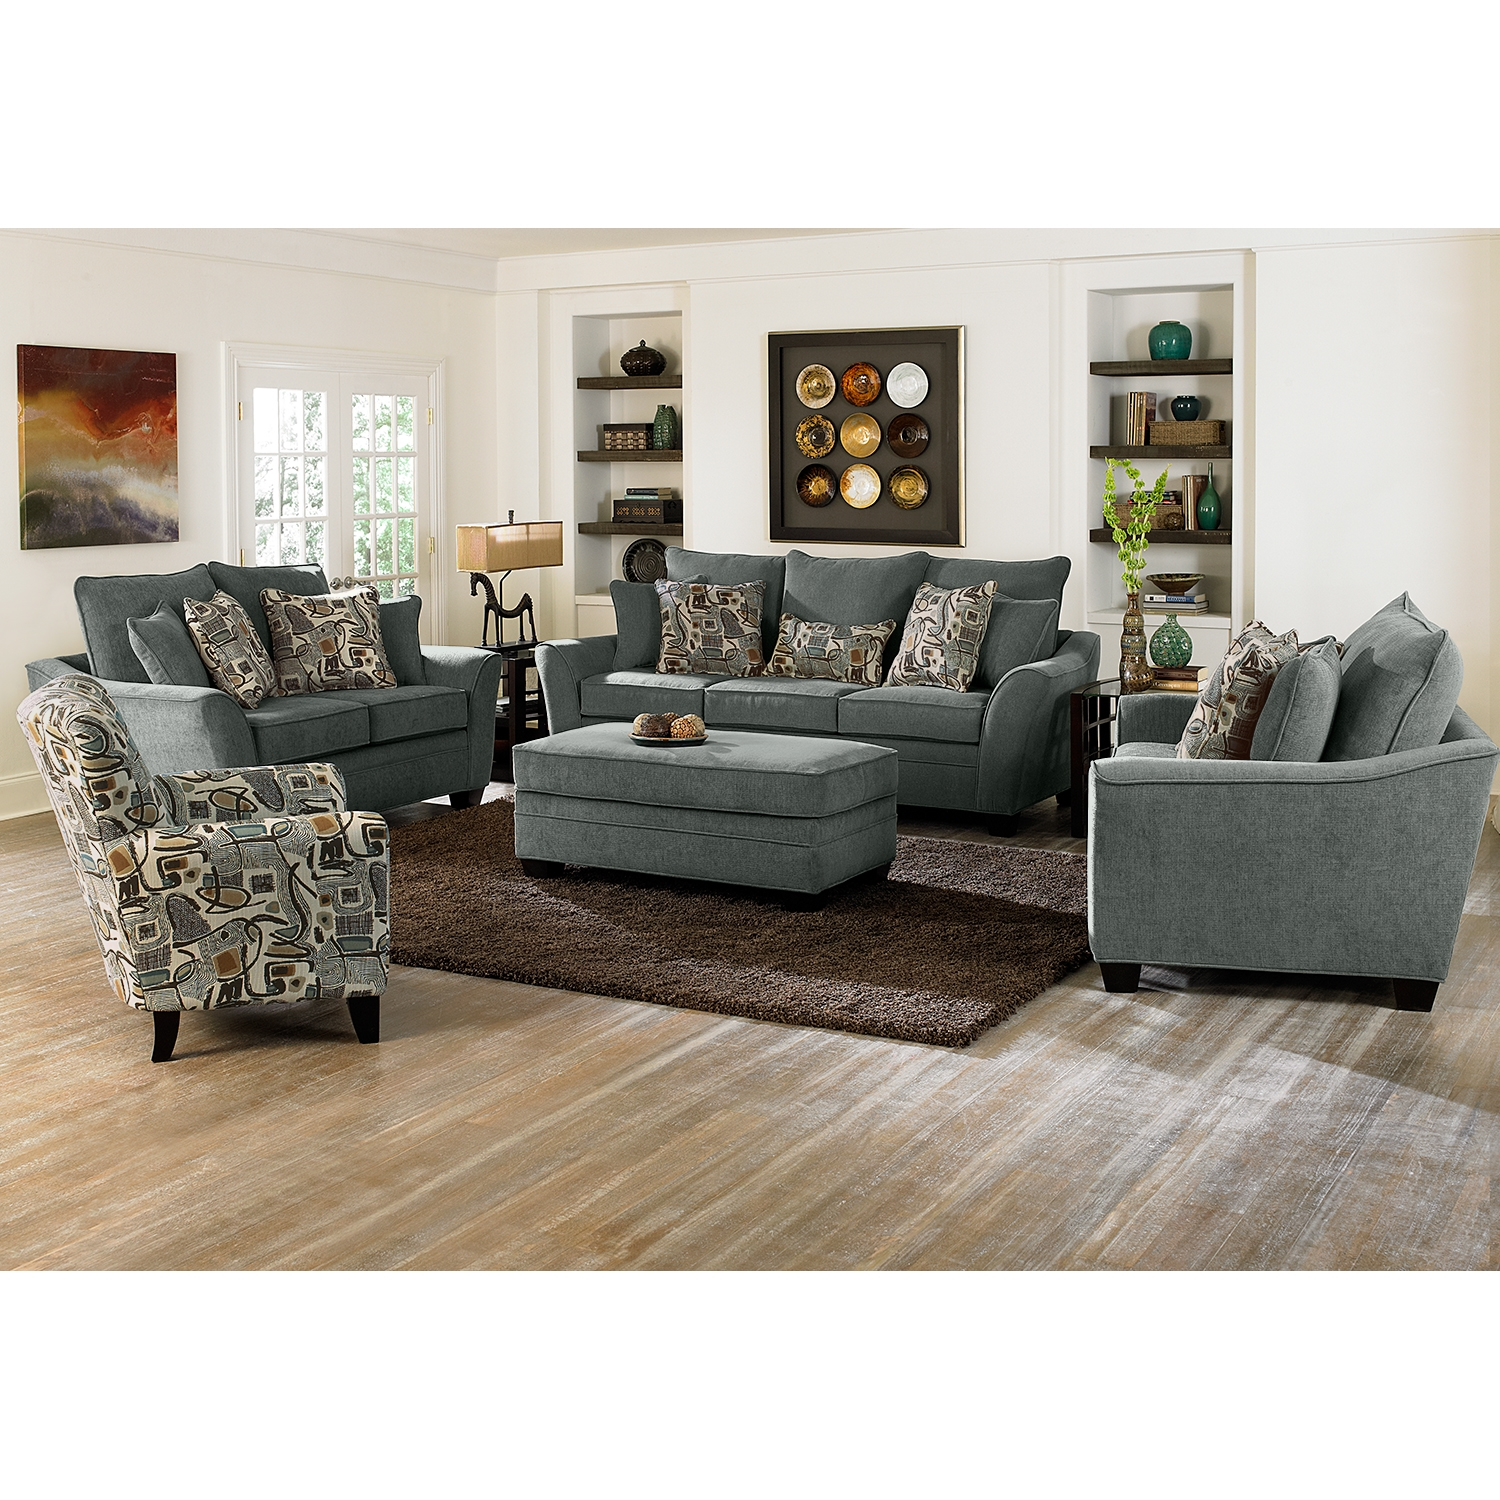 Endearing Living Room With Ottoman Of Grey Sofa And Chairs Ottomans For